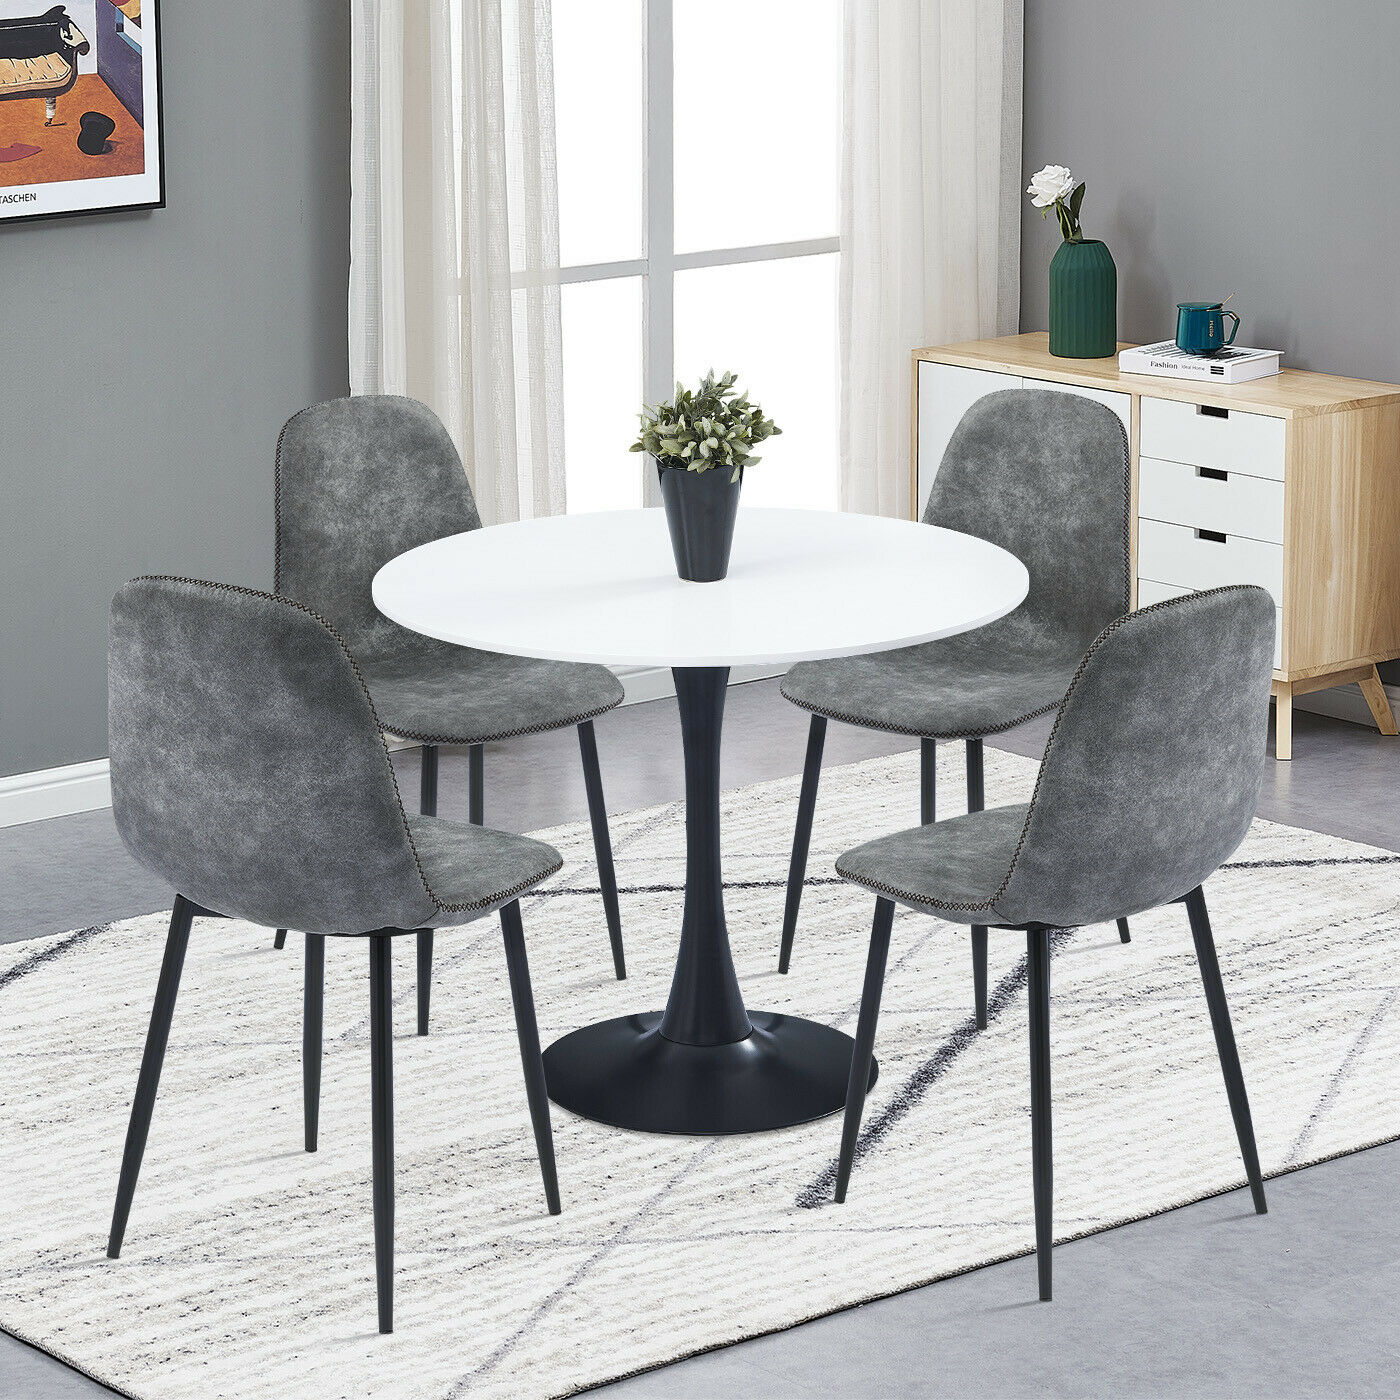 Image of: Retro Small Dining Table And 4 Chairs Faux Suede Distressed Fabric Kitchen Sets Ebay